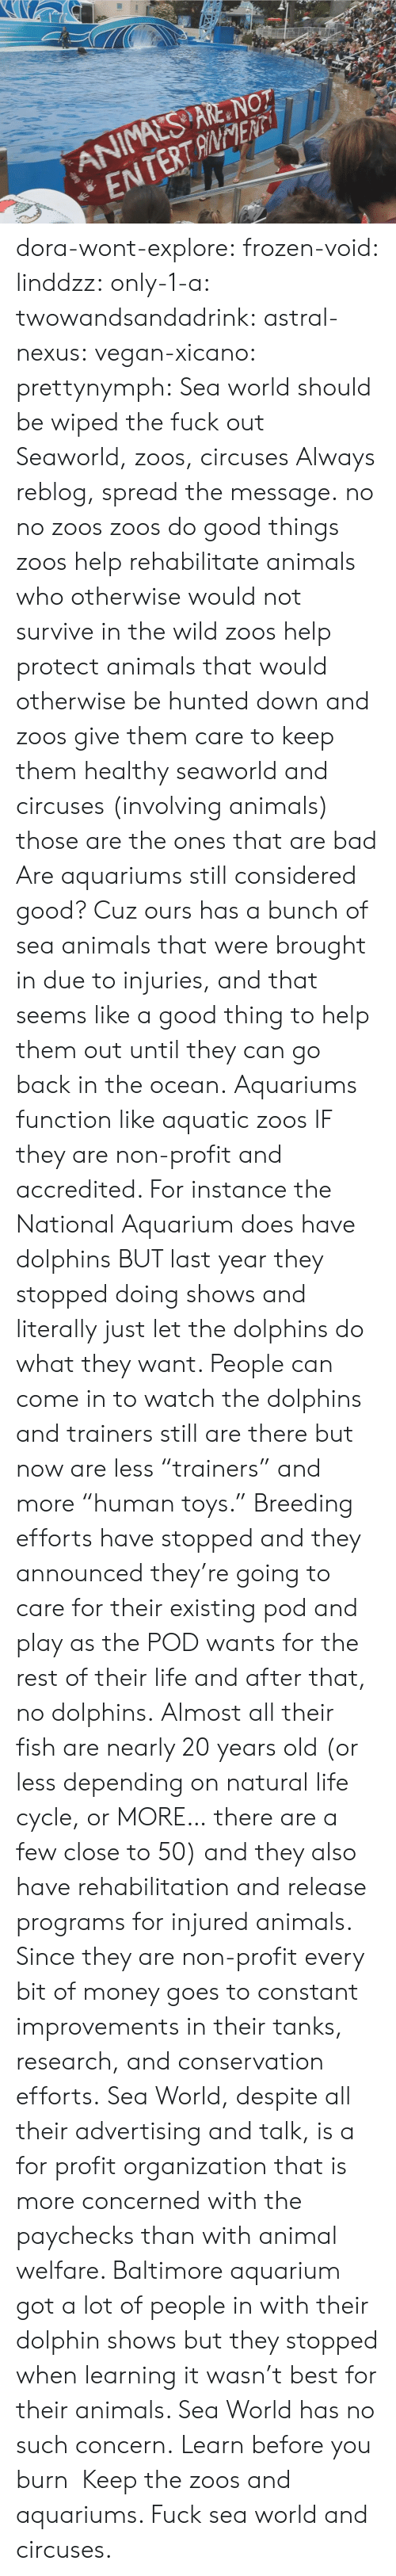 "Hunted: ANIMALS ARE NOT  ENTERTANENTi dora-wont-explore:   frozen-void:  linddzz:  only-1-a:  twowandsandadrink:  astral-nexus:  vegan-xicano:  prettynymph:  Sea world should be wiped the fuck out  Seaworld, zoos, circuses  Always reblog, spread the message.  no no zoos zoos do good things zoos help rehabilitate animals who otherwise would not survive in the wild zoos help protect animals that would otherwise be hunted down and zoos give them care to keep them healthy seaworld and circuses (involving animals) those are the ones that are bad  Are aquariums still considered good? Cuz ours has a bunch of sea animals that were brought in due to injuries, and that seems like a good thing to help them out until they can go back in the ocean.  Aquariums function like aquatic zoos IF they are non-profit and accredited. For instance the National Aquarium does have dolphins BUT last year they stopped doing shows and literally just let the dolphins do what they want. People can come in to watch the dolphins and trainers still are there but now are less ""trainers"" and more ""human toys."" Breeding efforts have stopped and they announced they're going to care for their existing pod and play as the POD wants for the rest of their life and after that, no dolphins. Almost all their fish are nearly 20 years old (or less depending on natural life cycle, or MORE… there are a few close to 50) and they also have rehabilitation and release programs for injured animals. Since they are non-profit every bit of money goes to constant improvements in their tanks, research, and conservation efforts. Sea World, despite all their advertising and talk, is a for profit organization that is more concerned with the paychecks than with animal welfare. Baltimore aquarium got a lot of people in with their dolphin shows but they stopped when learning it wasn't best for their animals. Sea World has no such concern.  Learn before you burn   Keep the zoos and aquariums. Fuck sea world and circuses."